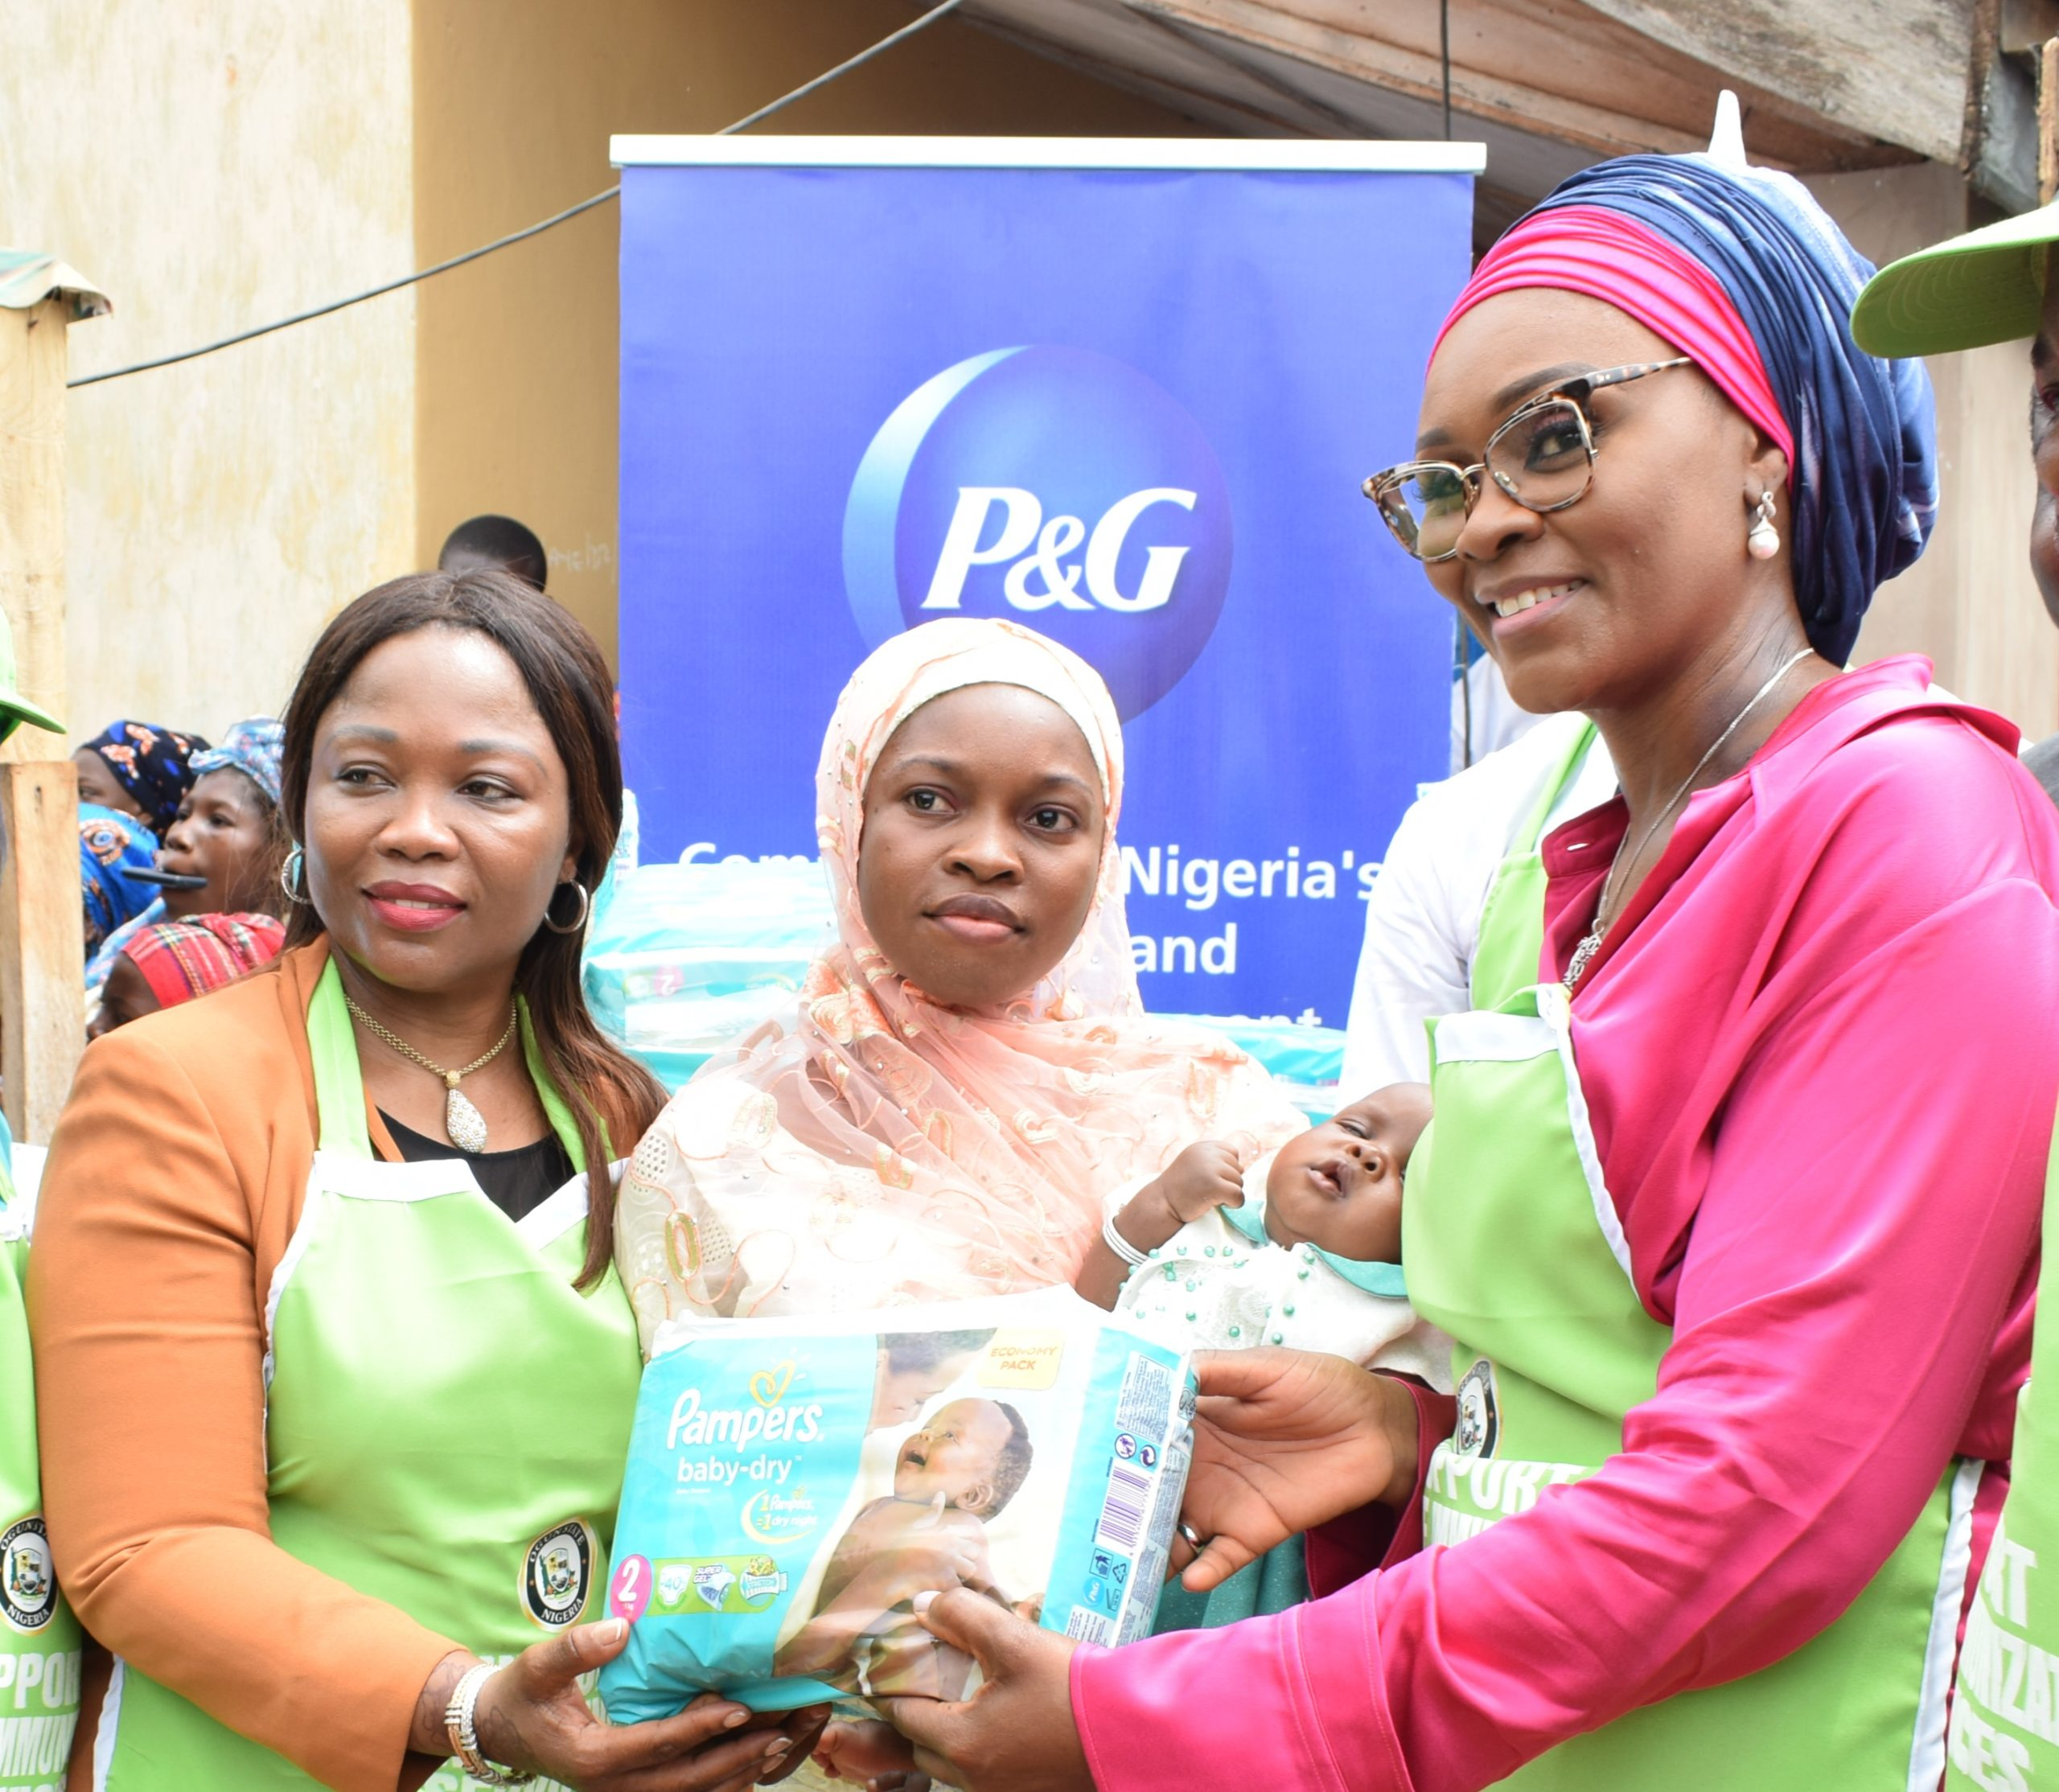 Procter & Gamble Partners Ogun State Government to Improve Child Health and Hygiene of over 10,000 Infants in The State - Brand Spur